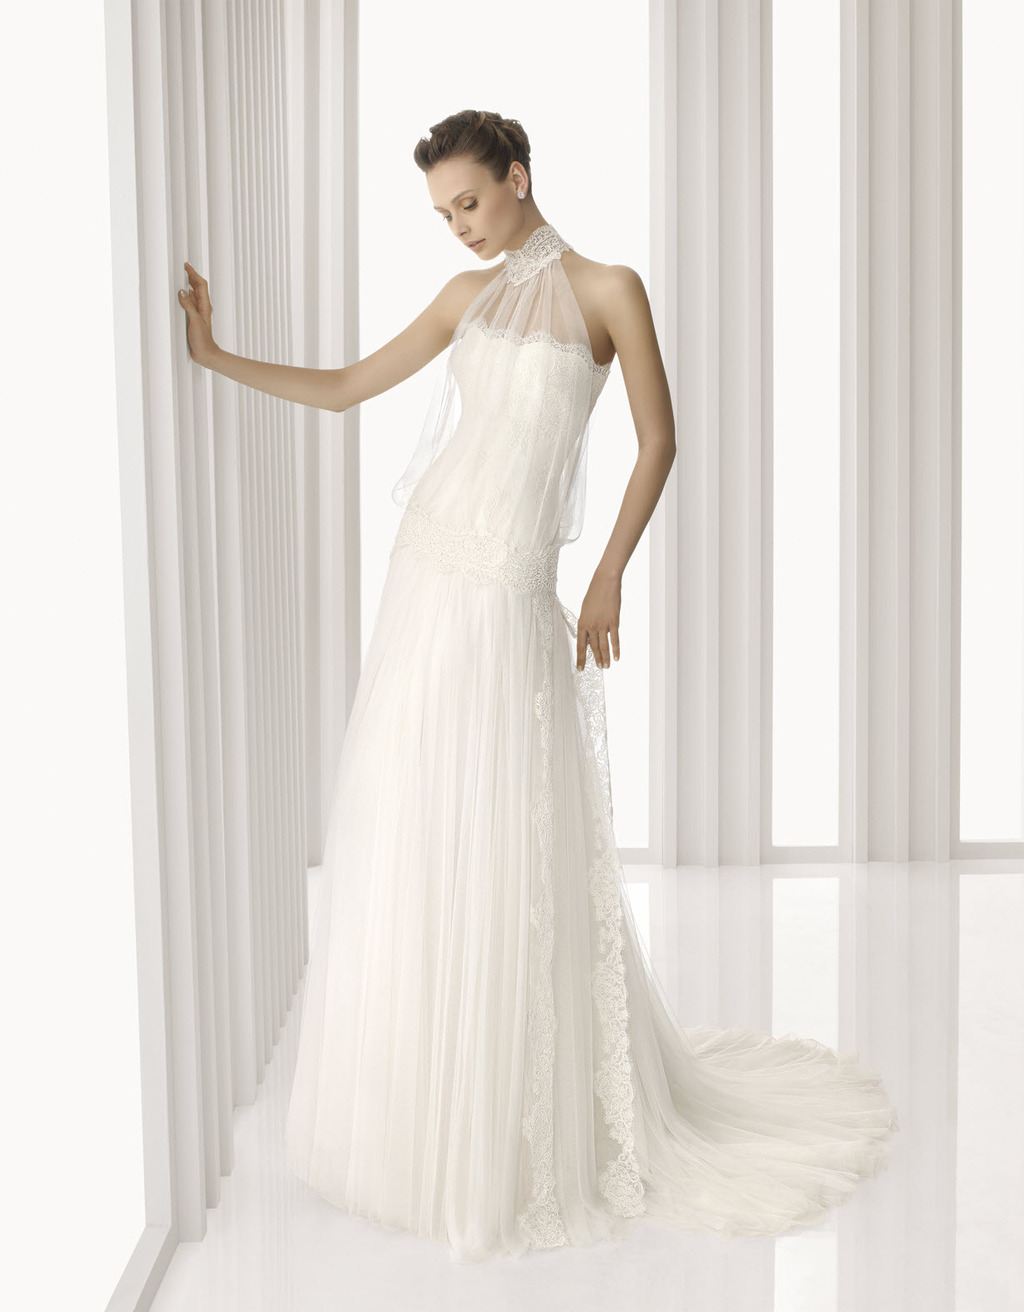 Andrina-spring-2012-wedding-dress-rosa-clara-bridal-gowns-romantic-high-neck-lace-sheath-column.full